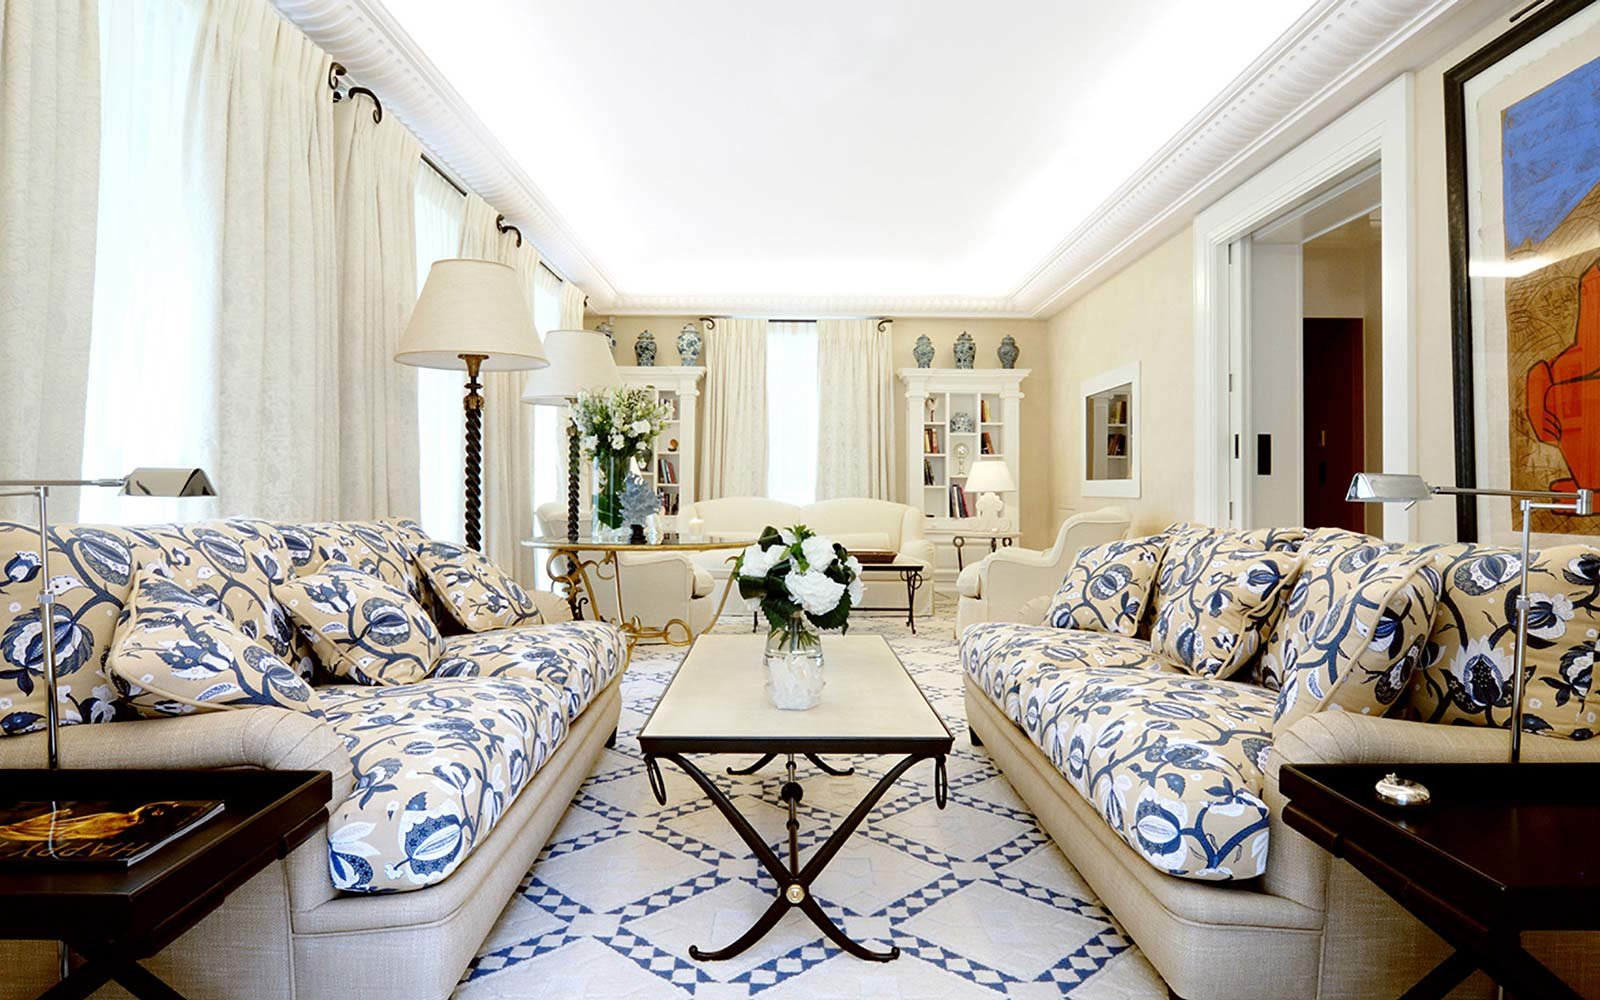 Grand-Hôtel du Cap Ferrat, a Four Seasons Hotel Villa Rose Pierre Suite